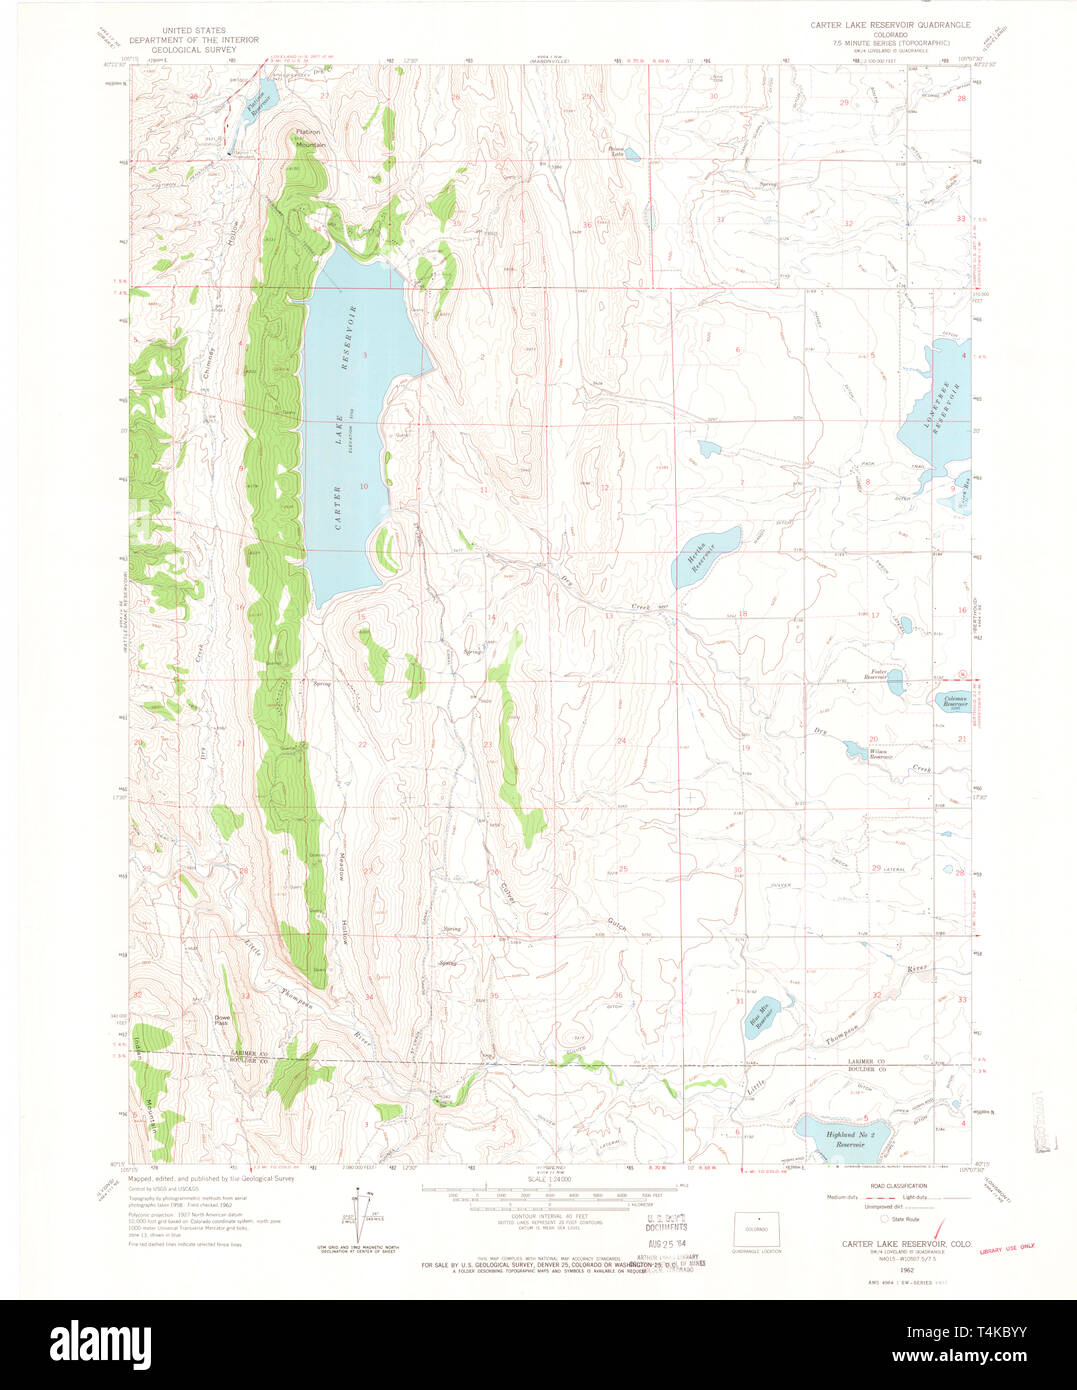 Carters Lake Map on